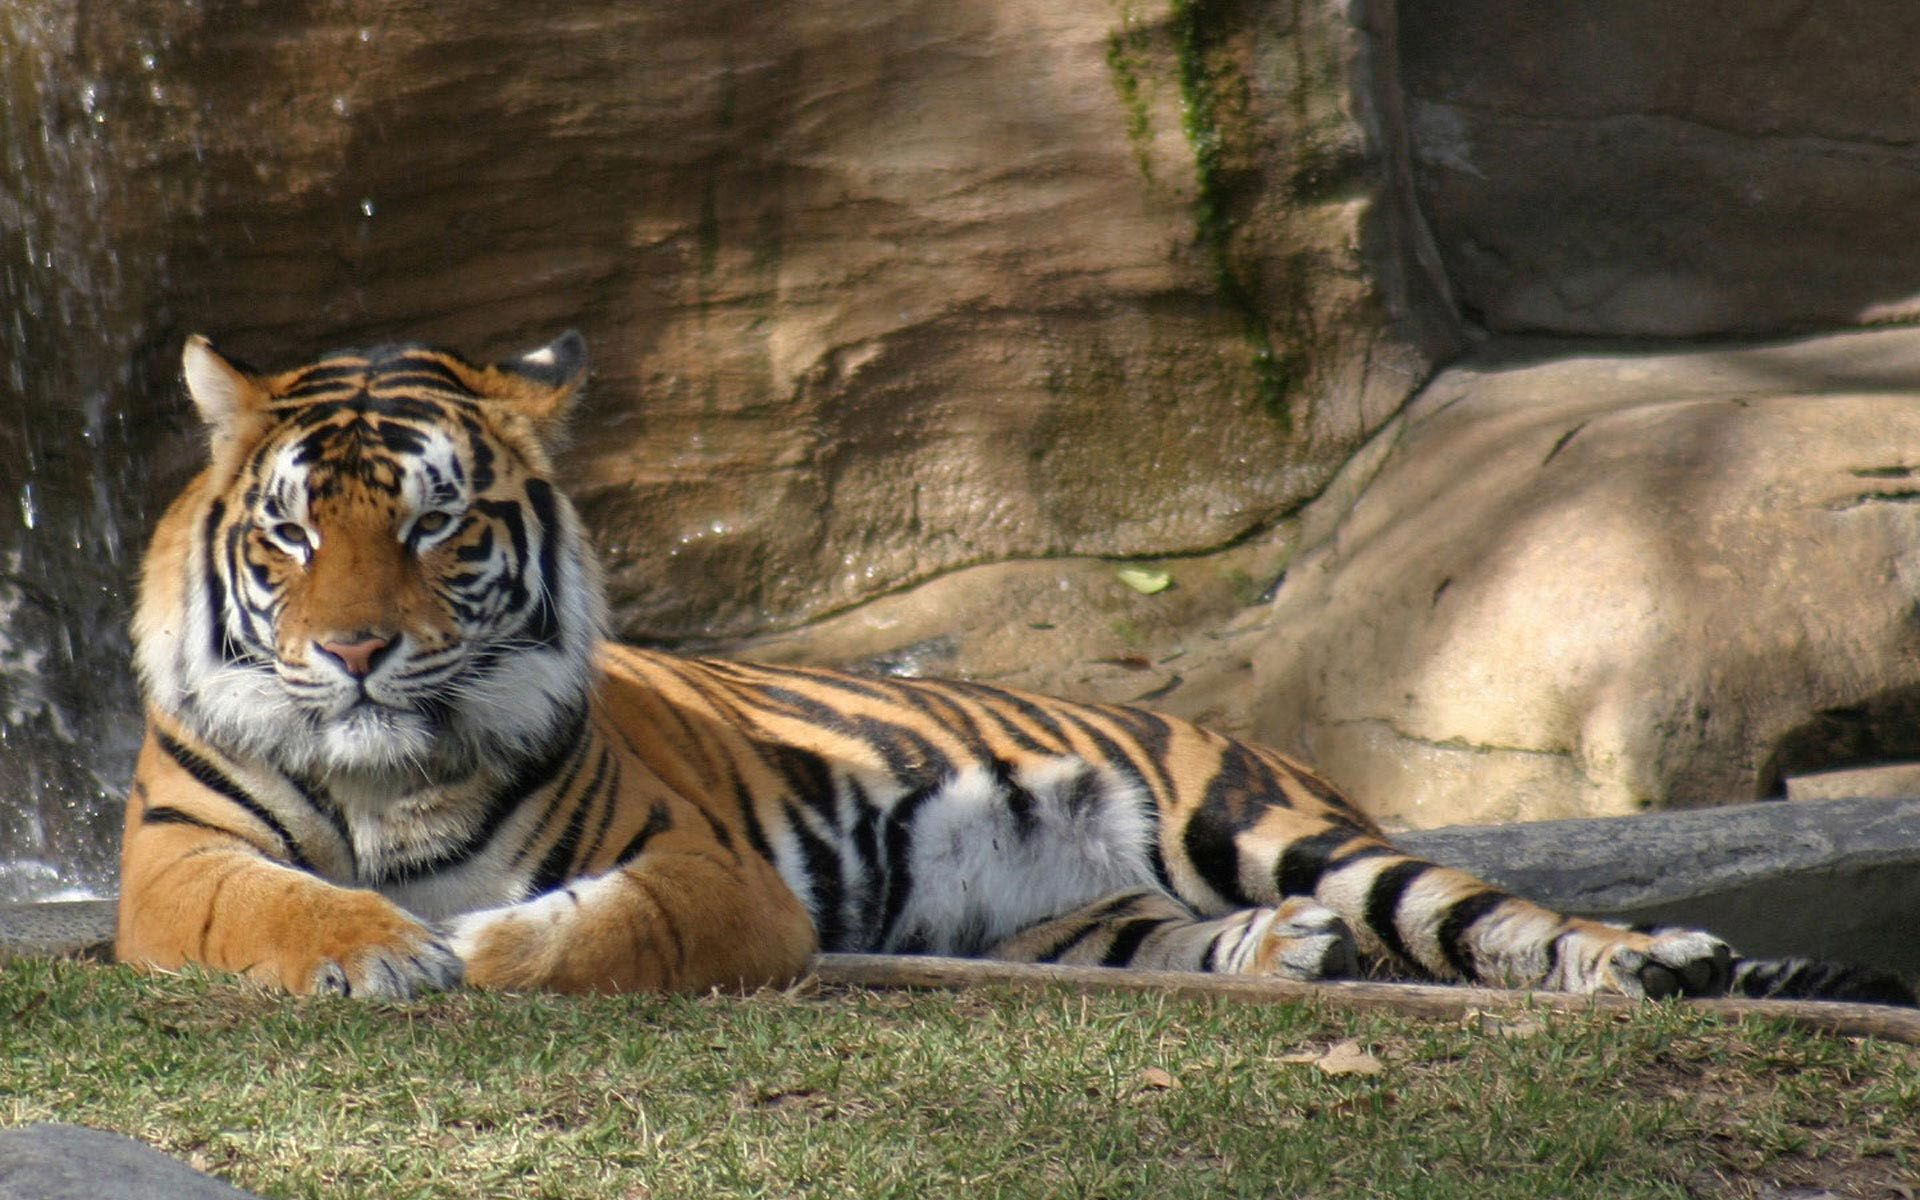 a relaxing afternoon in the sun for this tiger, what could be more